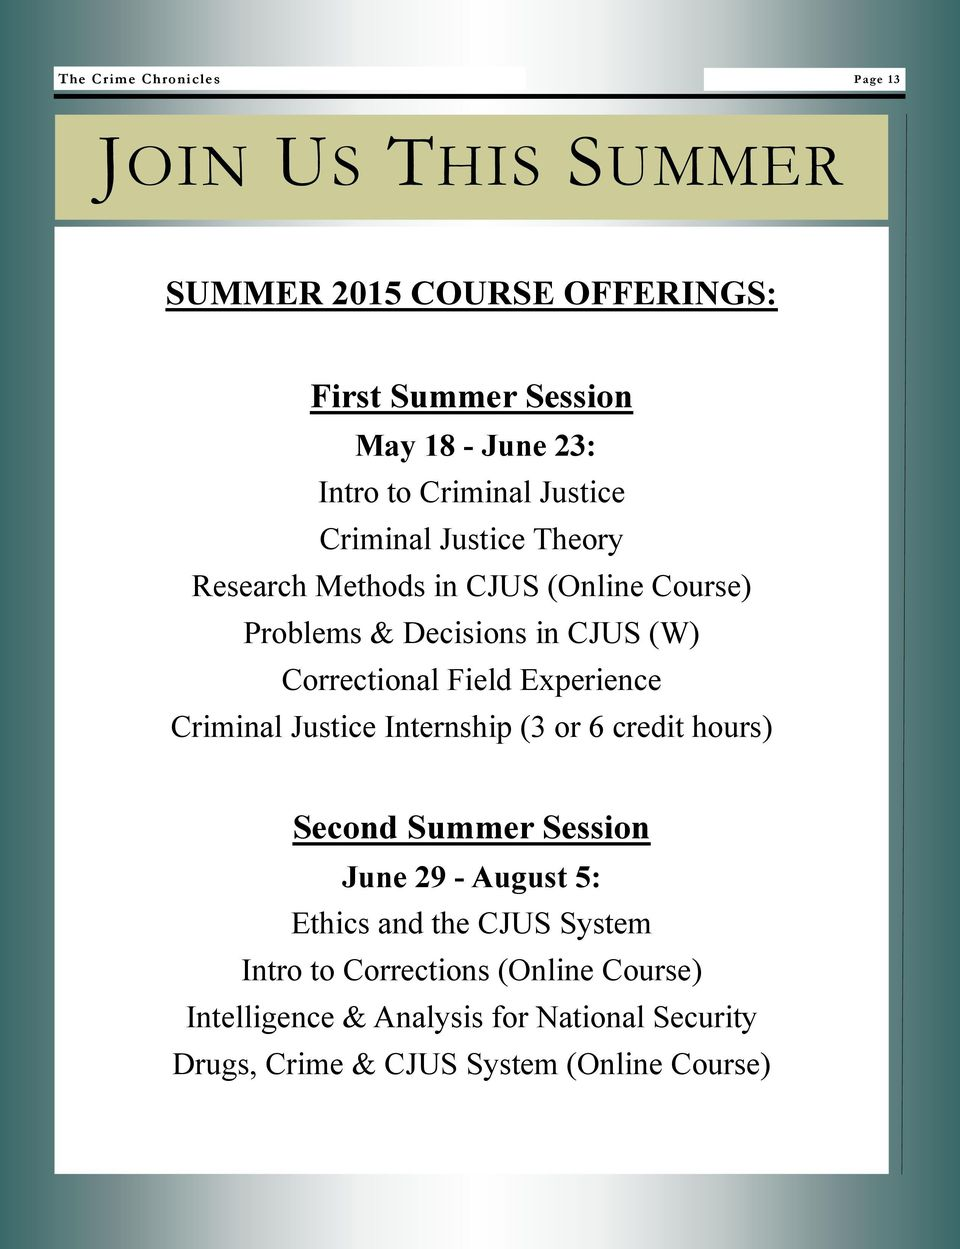 Field Experience Criminal Justice Internship (3 or 6 credit hours) Second Summer Session June 29 - August 5: Ethics and the CJUS